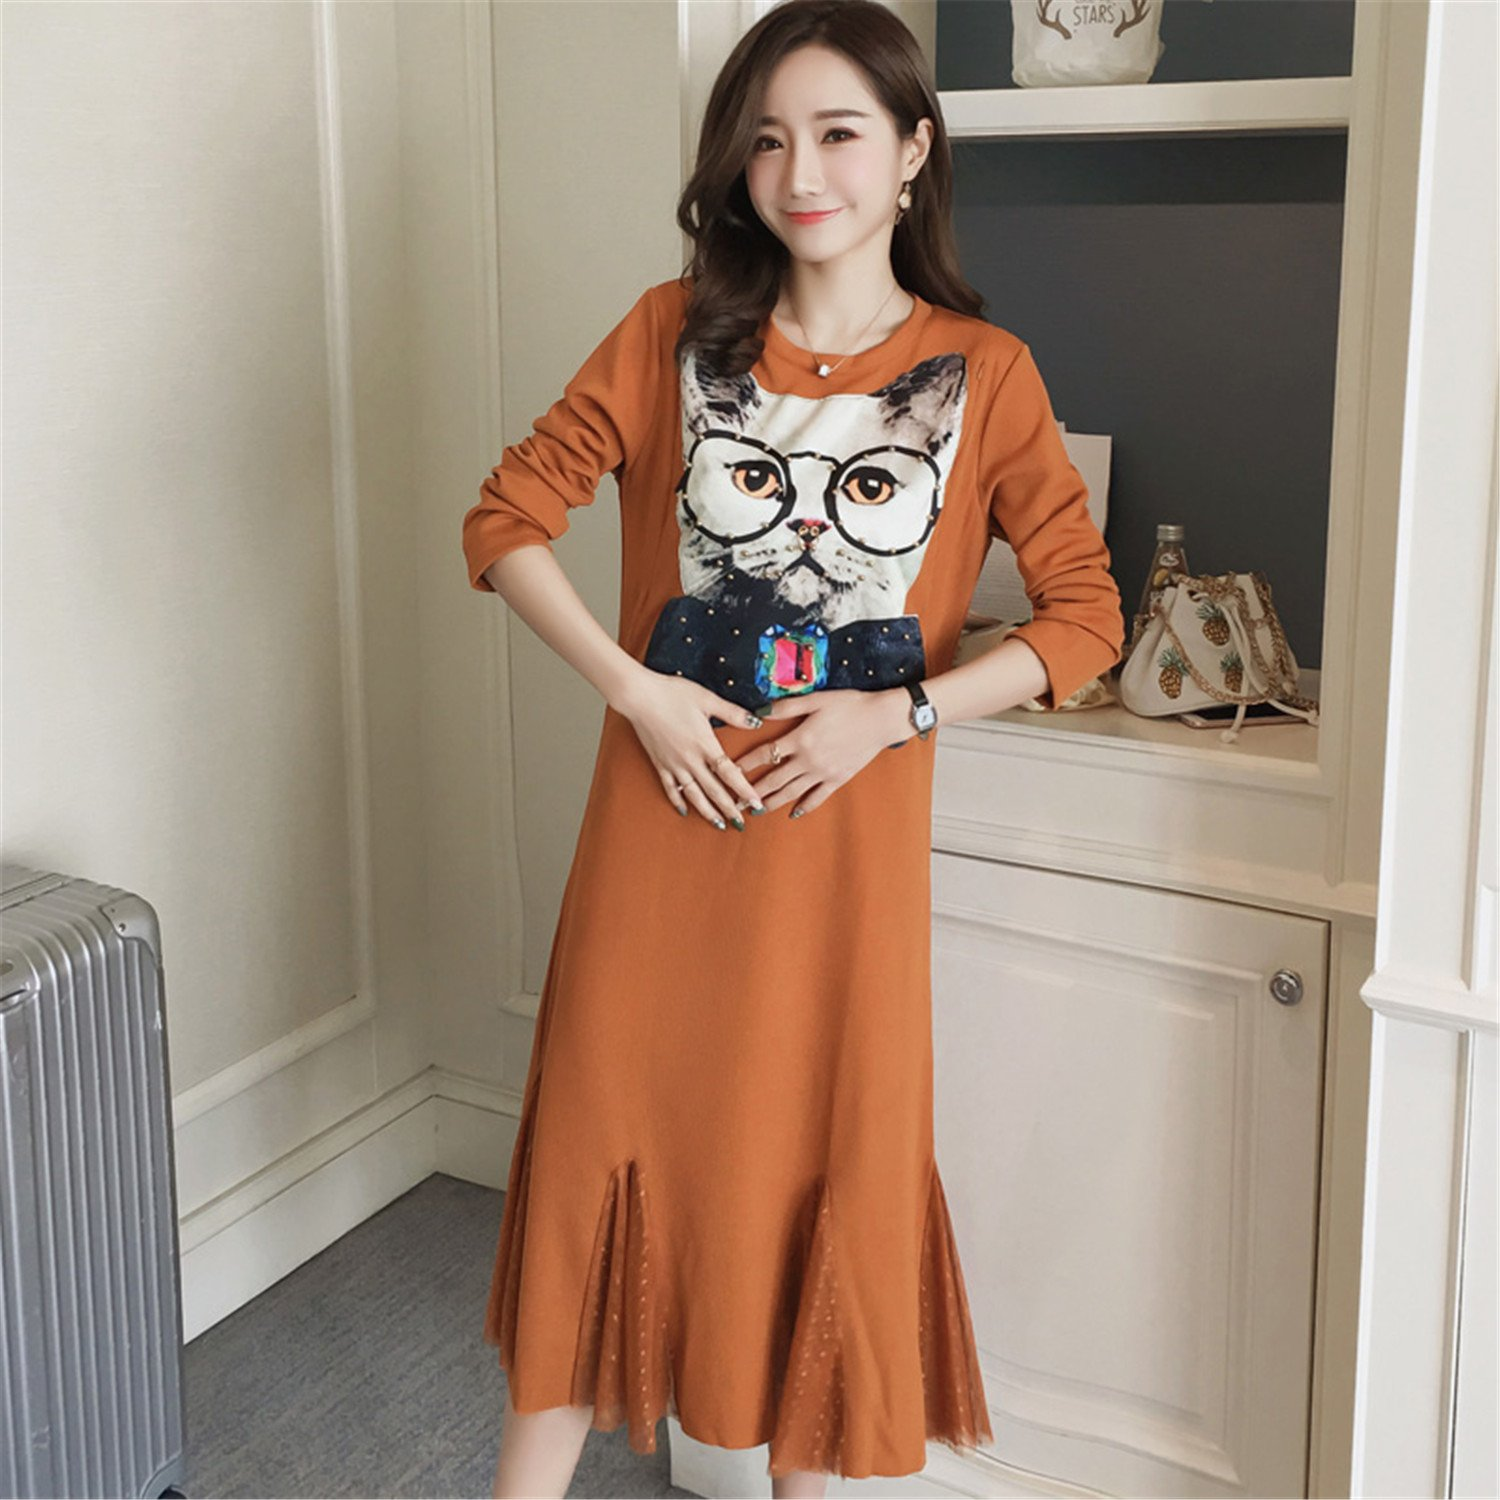 spyman Nice Long Maternity Dress Plus Size Dress Winter ...